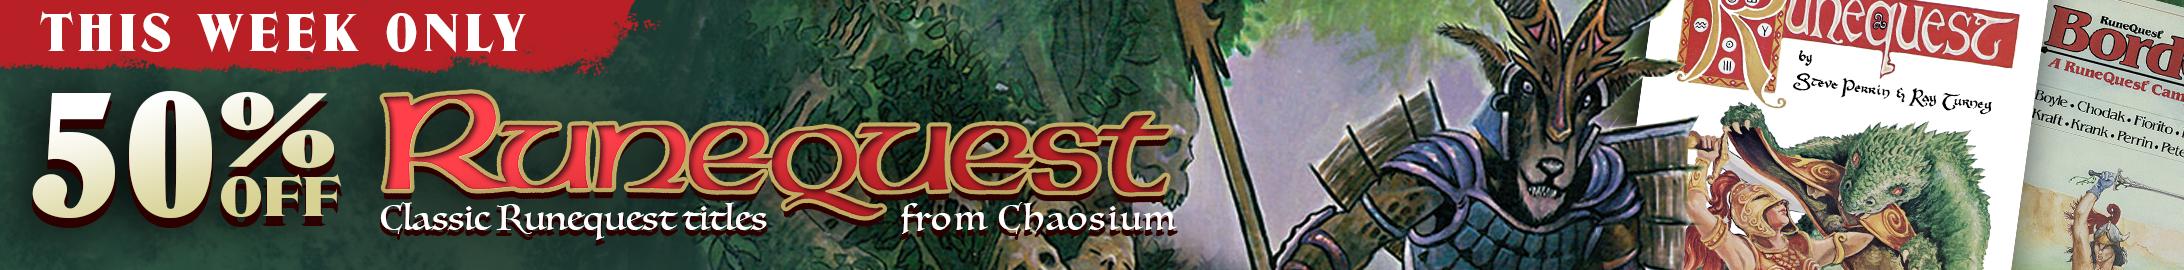 This week only: 50% off all Classic Runequest titles @ RPGNow.com